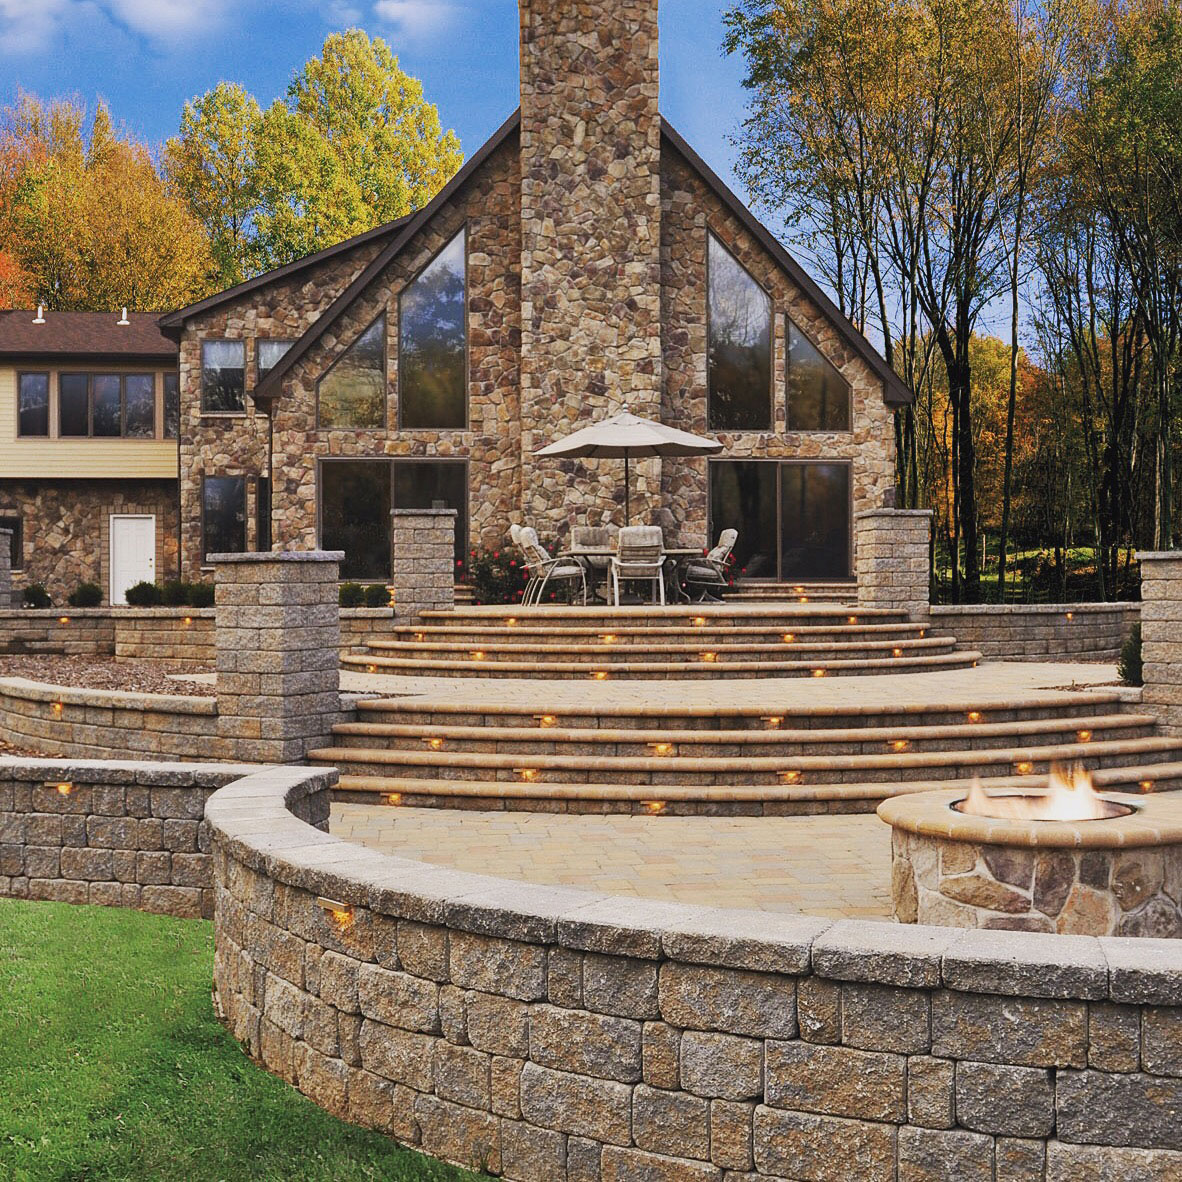 Stone home and outdoor area